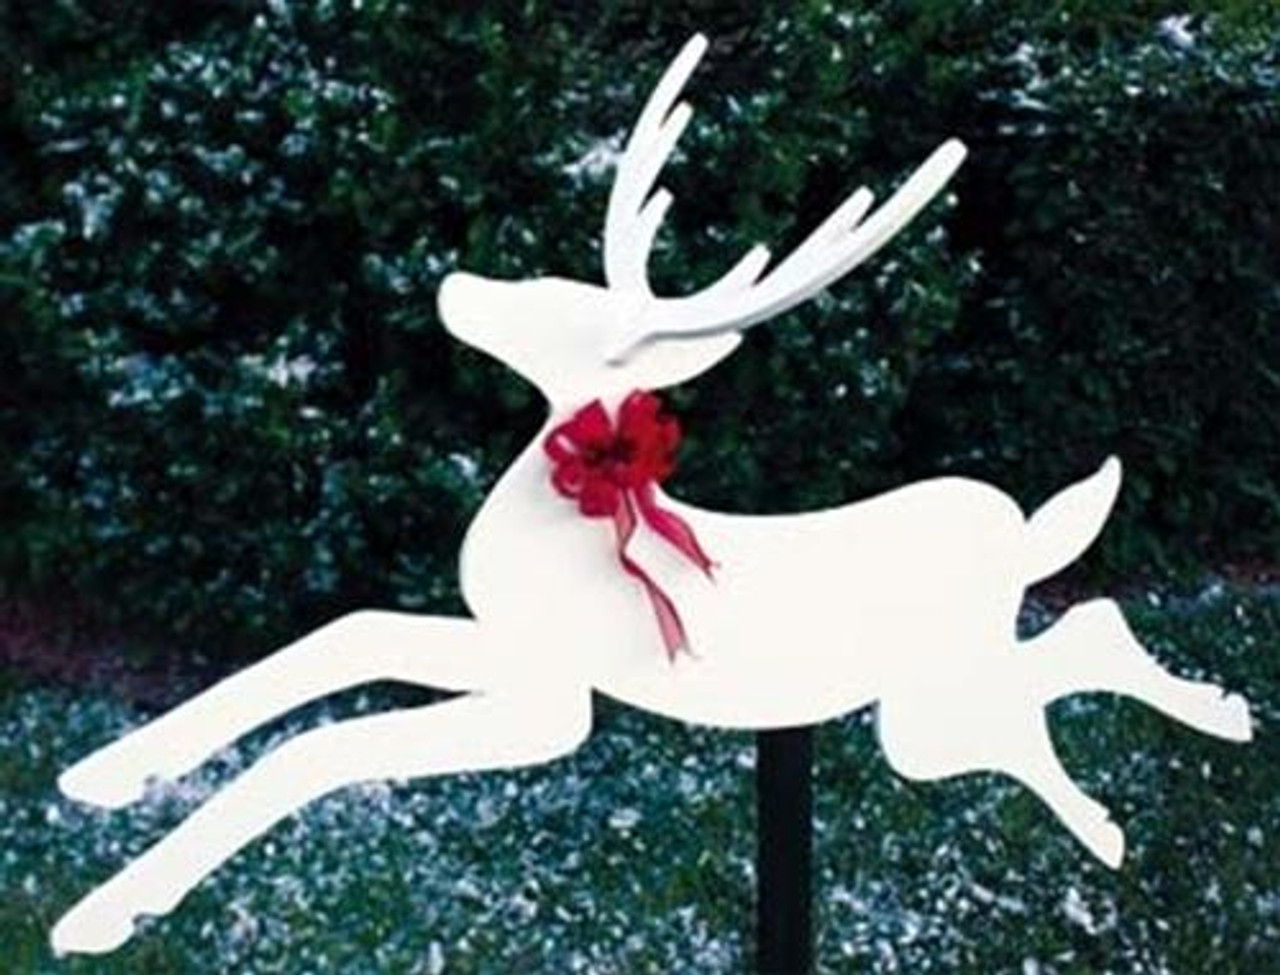 Dashing Deer Woodworking Plan is very easy to cut ,sand and paint.